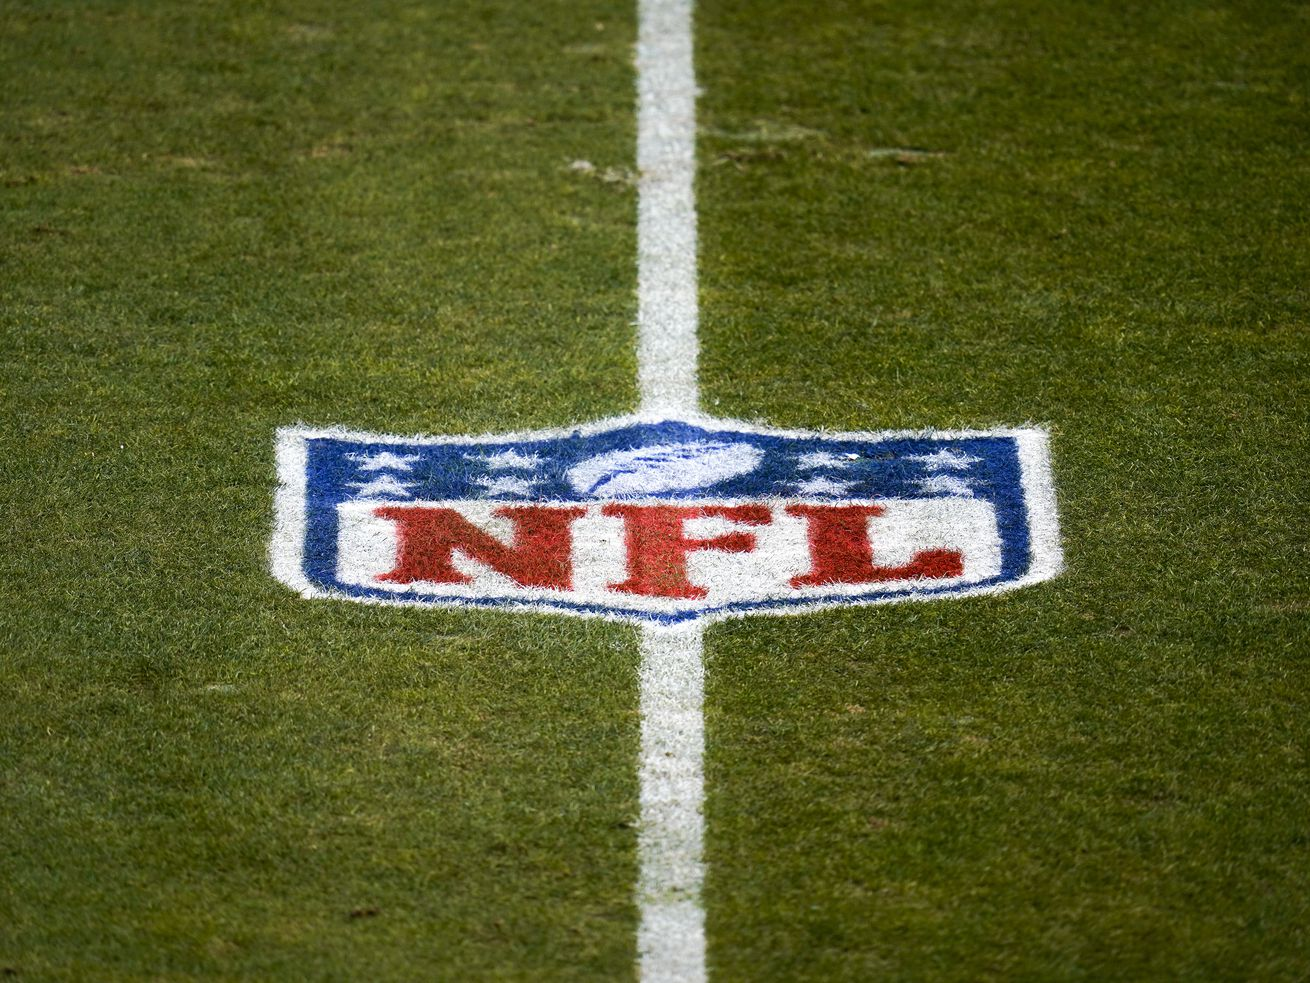 NFL teams with COVID-19 outbreaks could be forced to forfeit games this season.